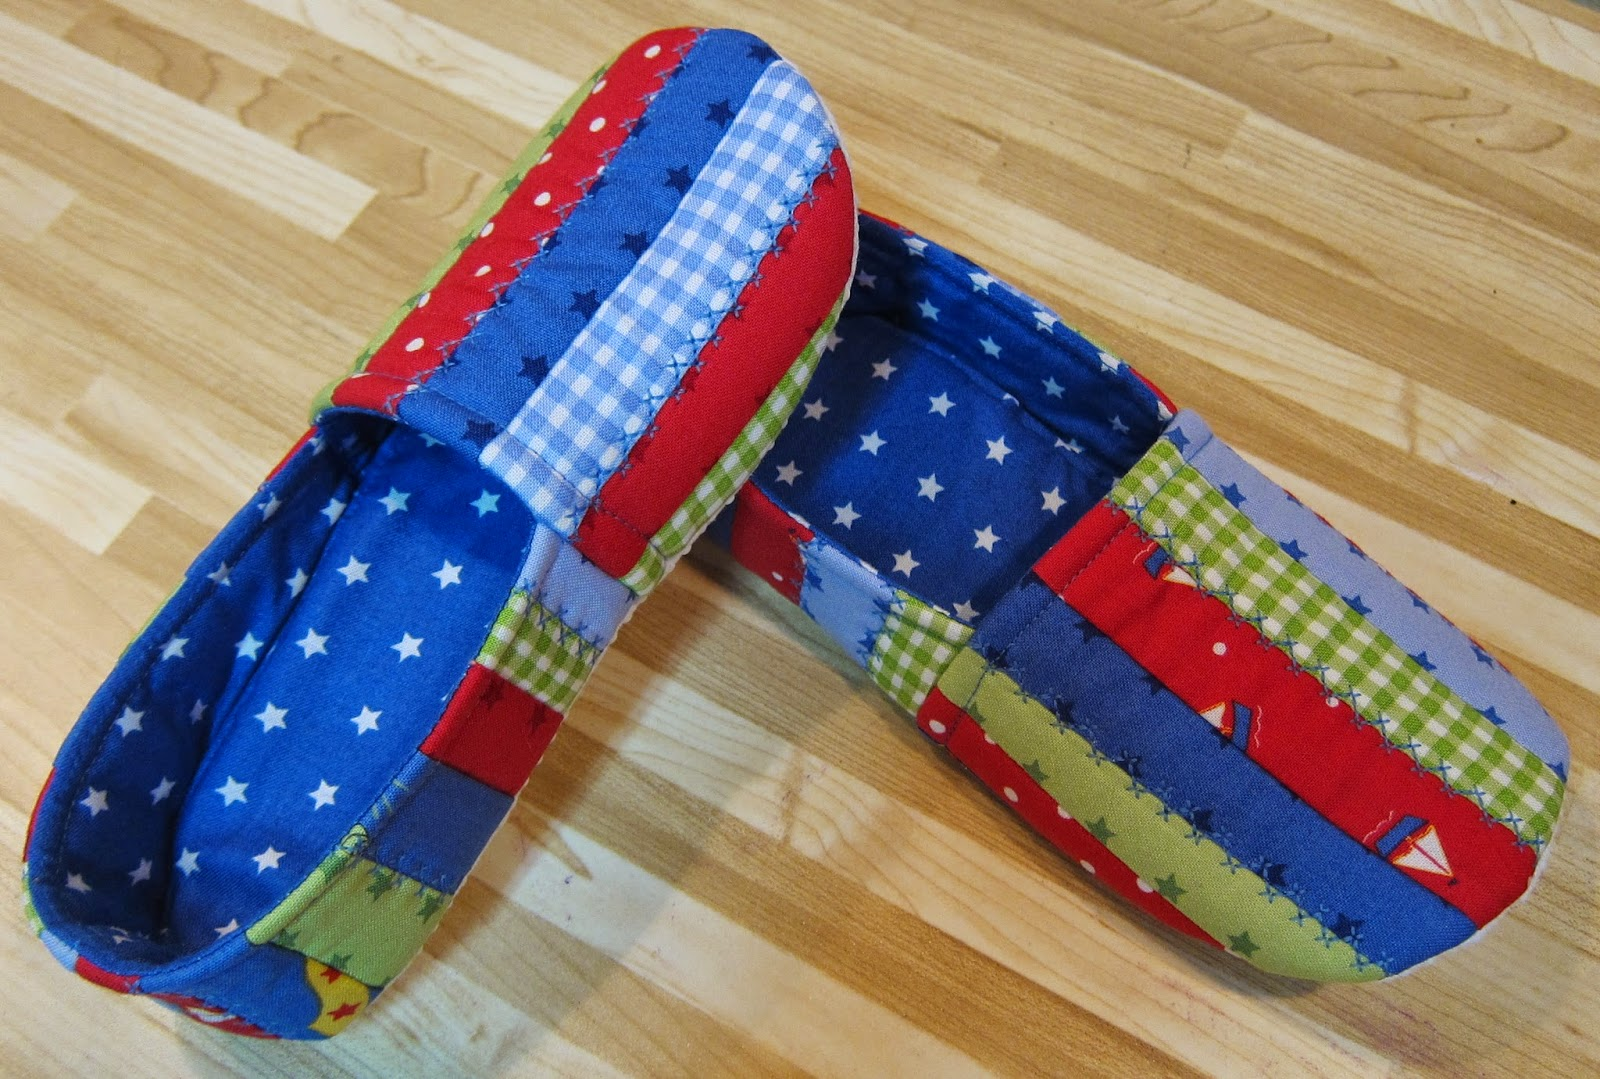 Cool Cats and Quilts: Quilted Slippers, Jack & Jill Slippers ... : quilted slippers pattern - Adamdwight.com